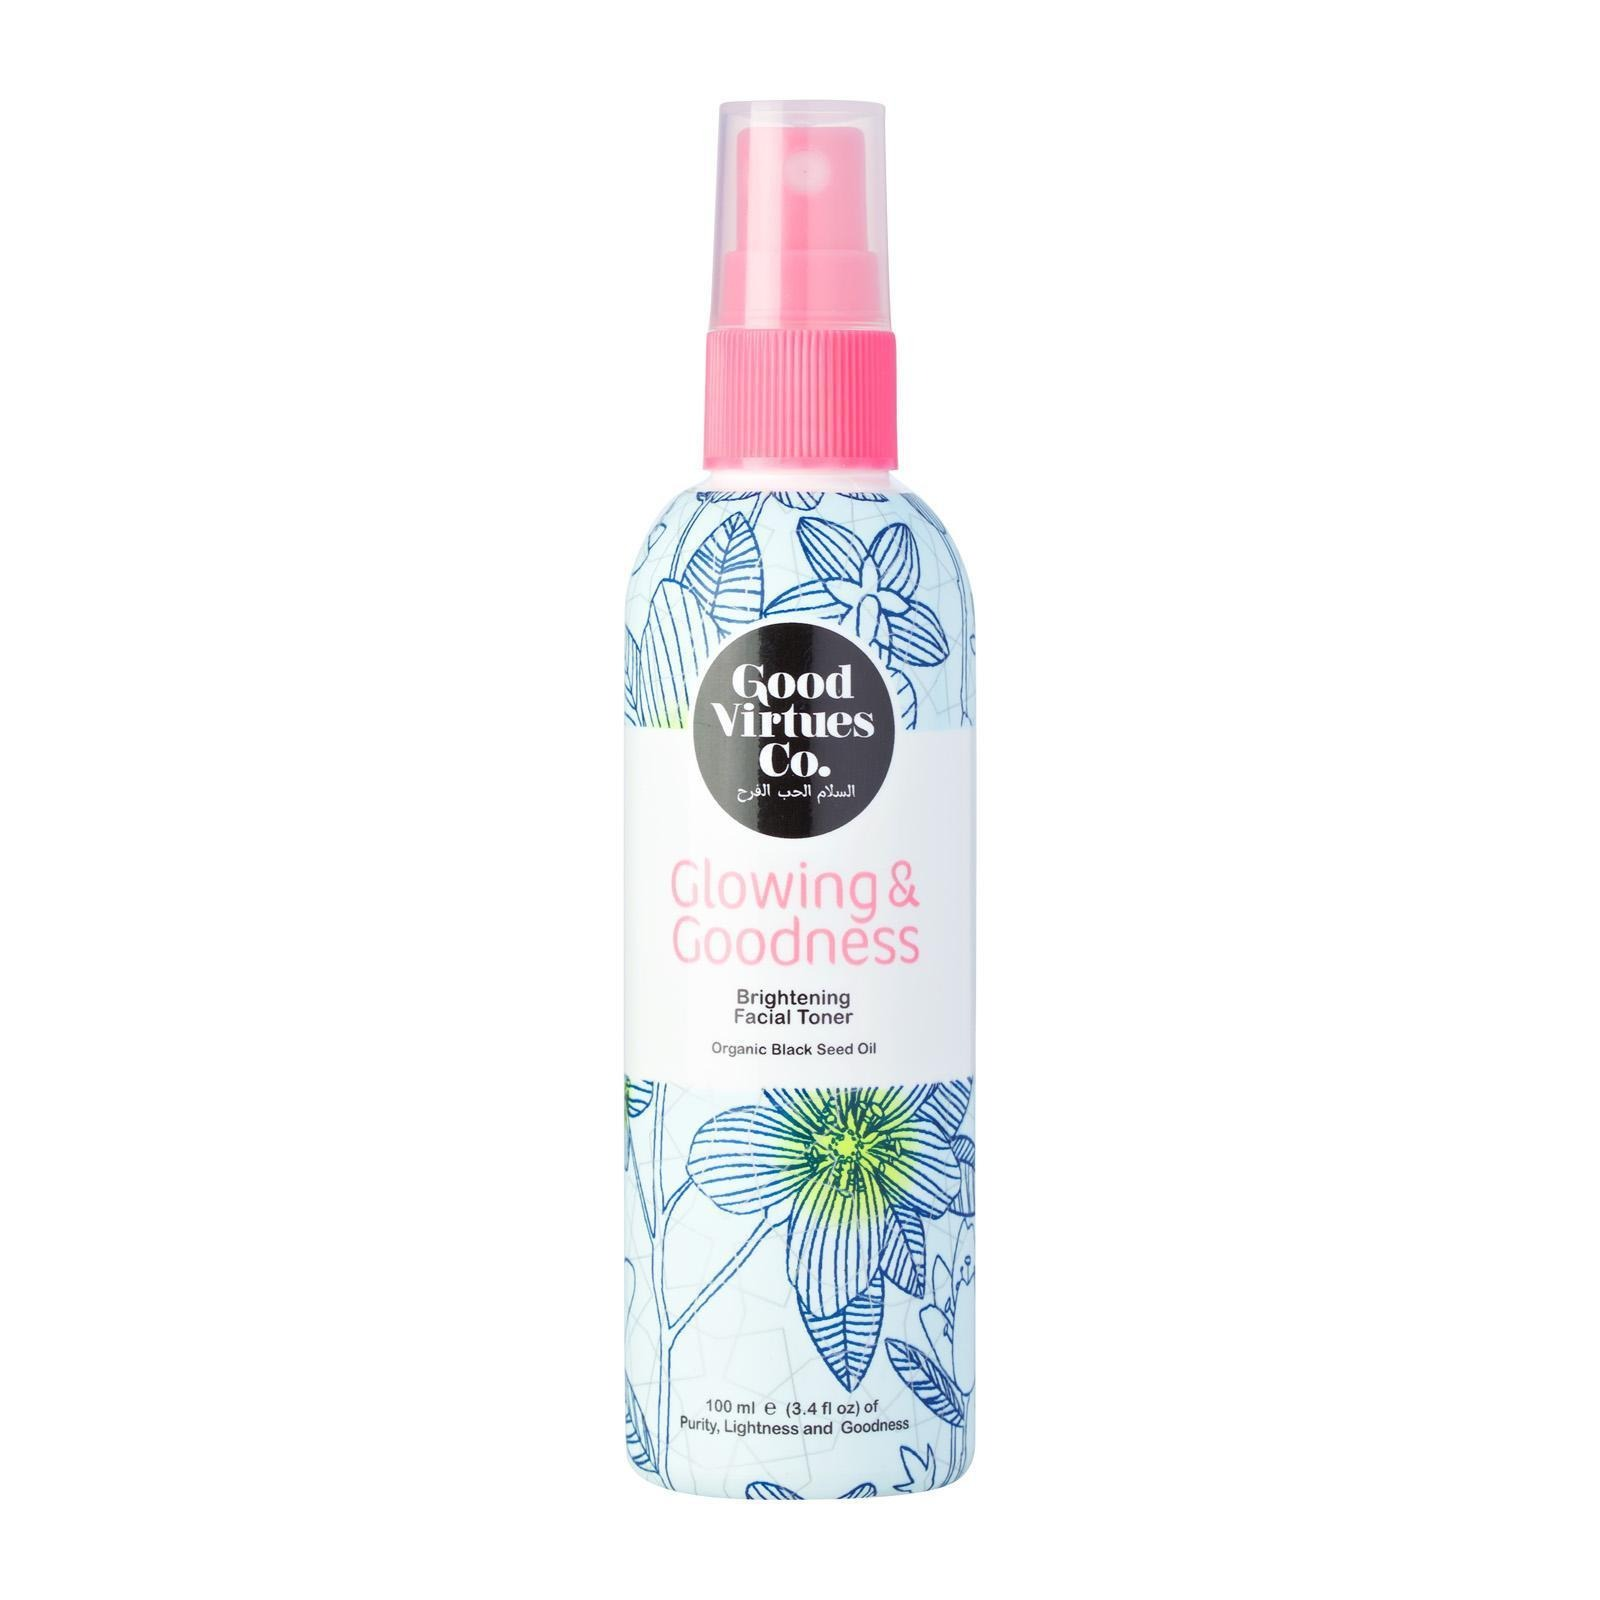 Good Virtues Co. Glowing & Goodness Brightening Facial Toner